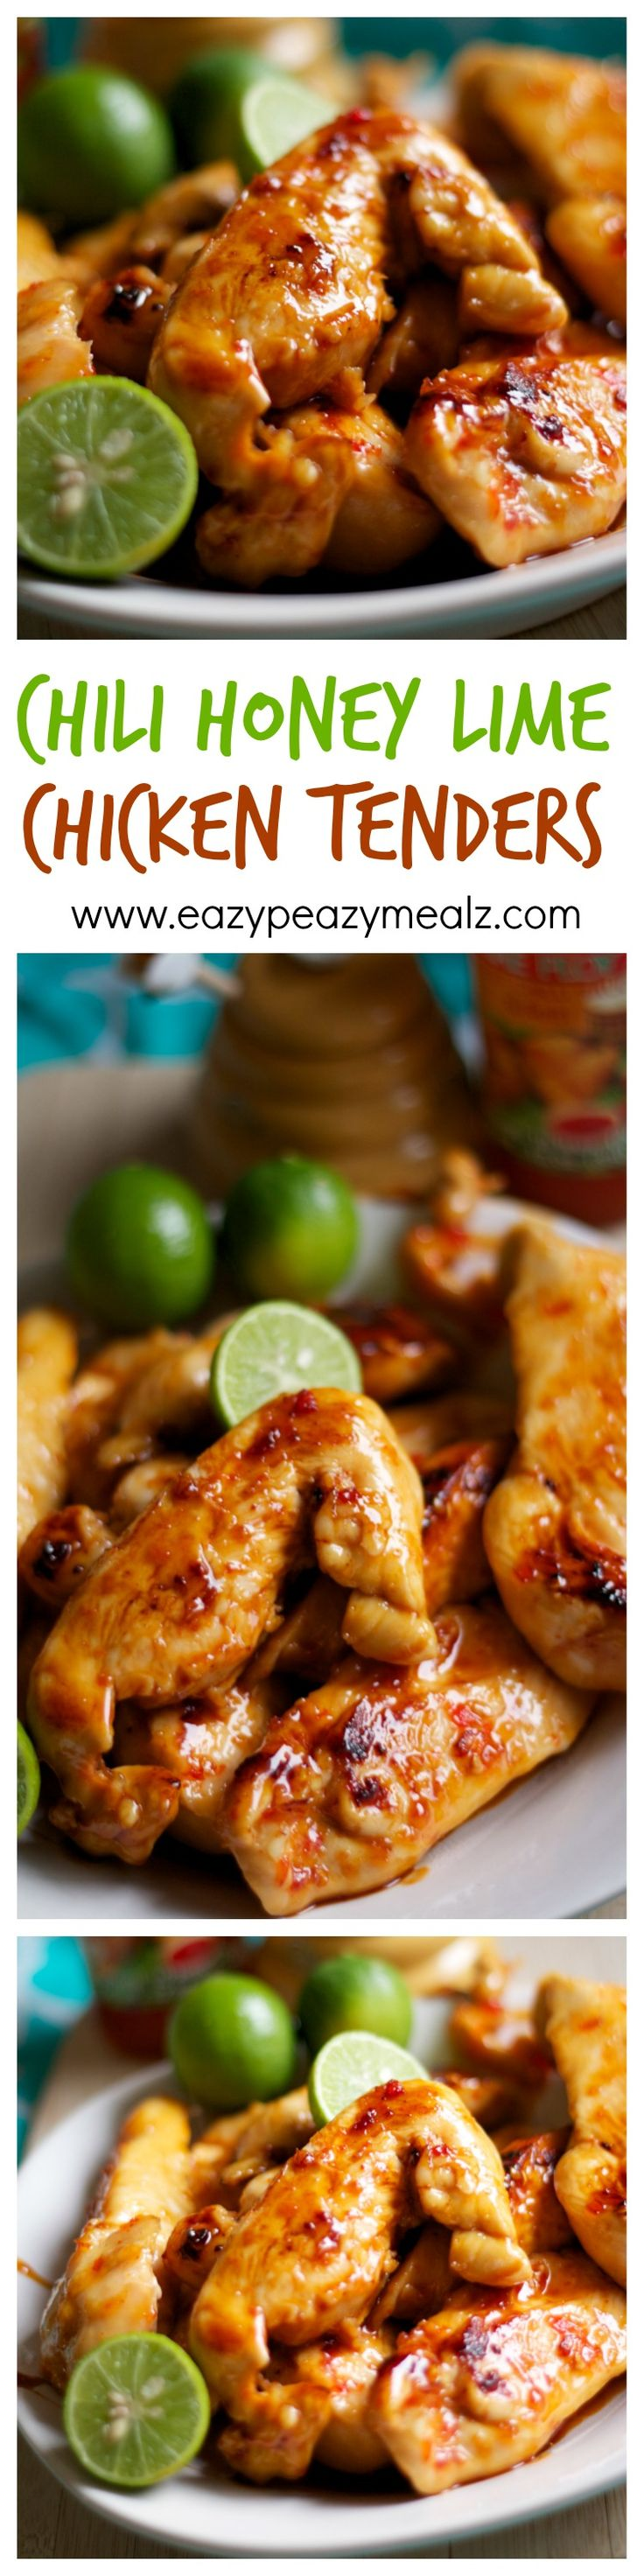 Chili Honey Lime Chicken Tenders -- yum! The perfect way to use chicken for weeknight meals! http://www.eazypeazymealz.com/chili-honey-lime-chicken-tenders-2/